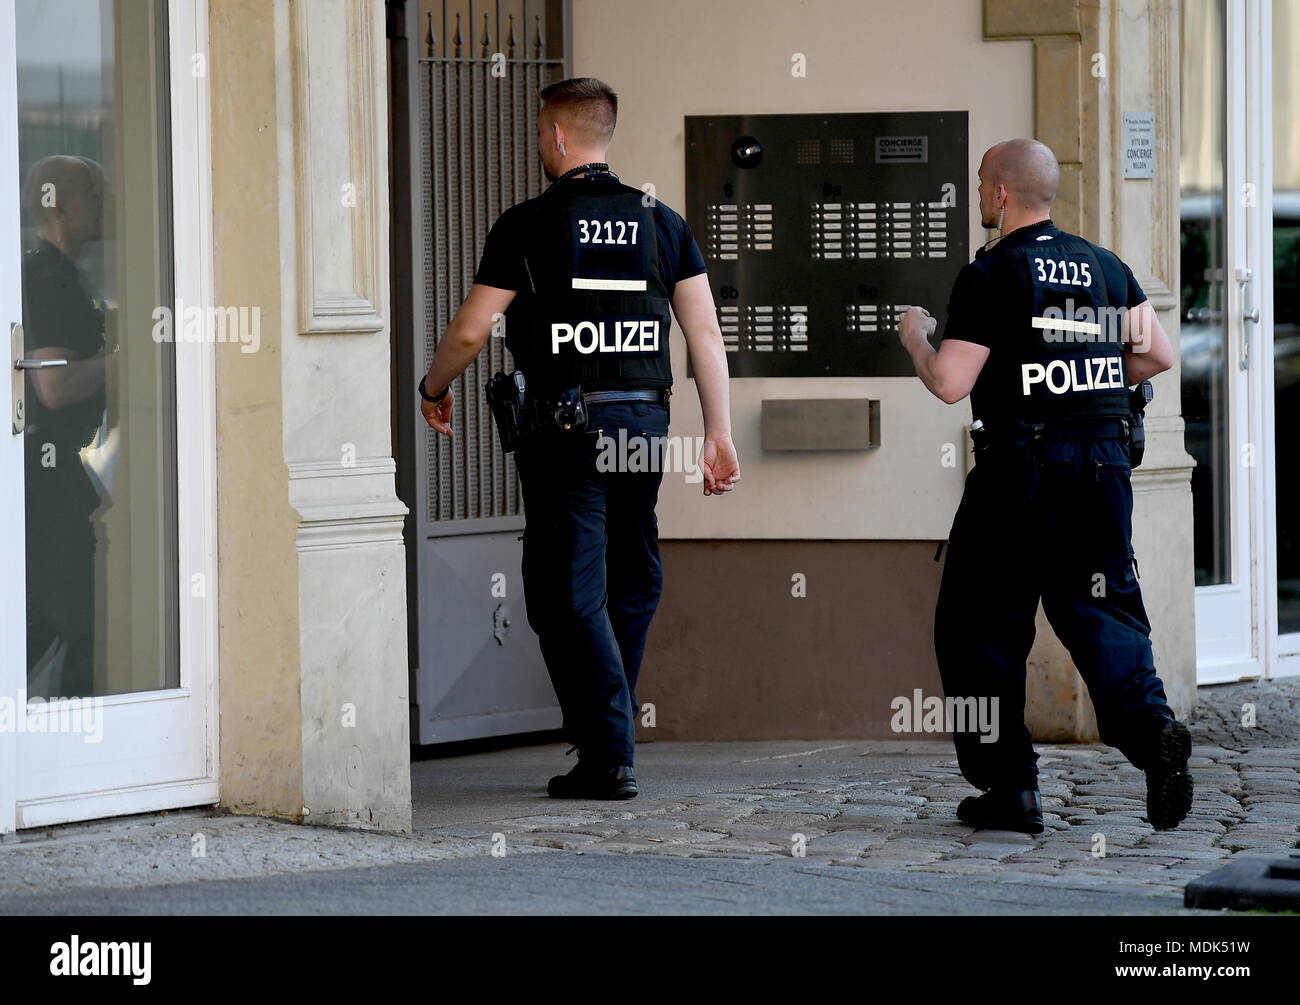 Berlin, Germany. 20th Apr, 2018. 20 April 2018, Germany, Berlin: Police officers evacuates an apartment block on Scharnhorststrasse in preparation for the disposal of a WWII bomb nearby. Photo: Britta Pedersen/dpa-Zentralbild/dpa Credit: dpa picture alliance/Alamy Live News Stock Photo